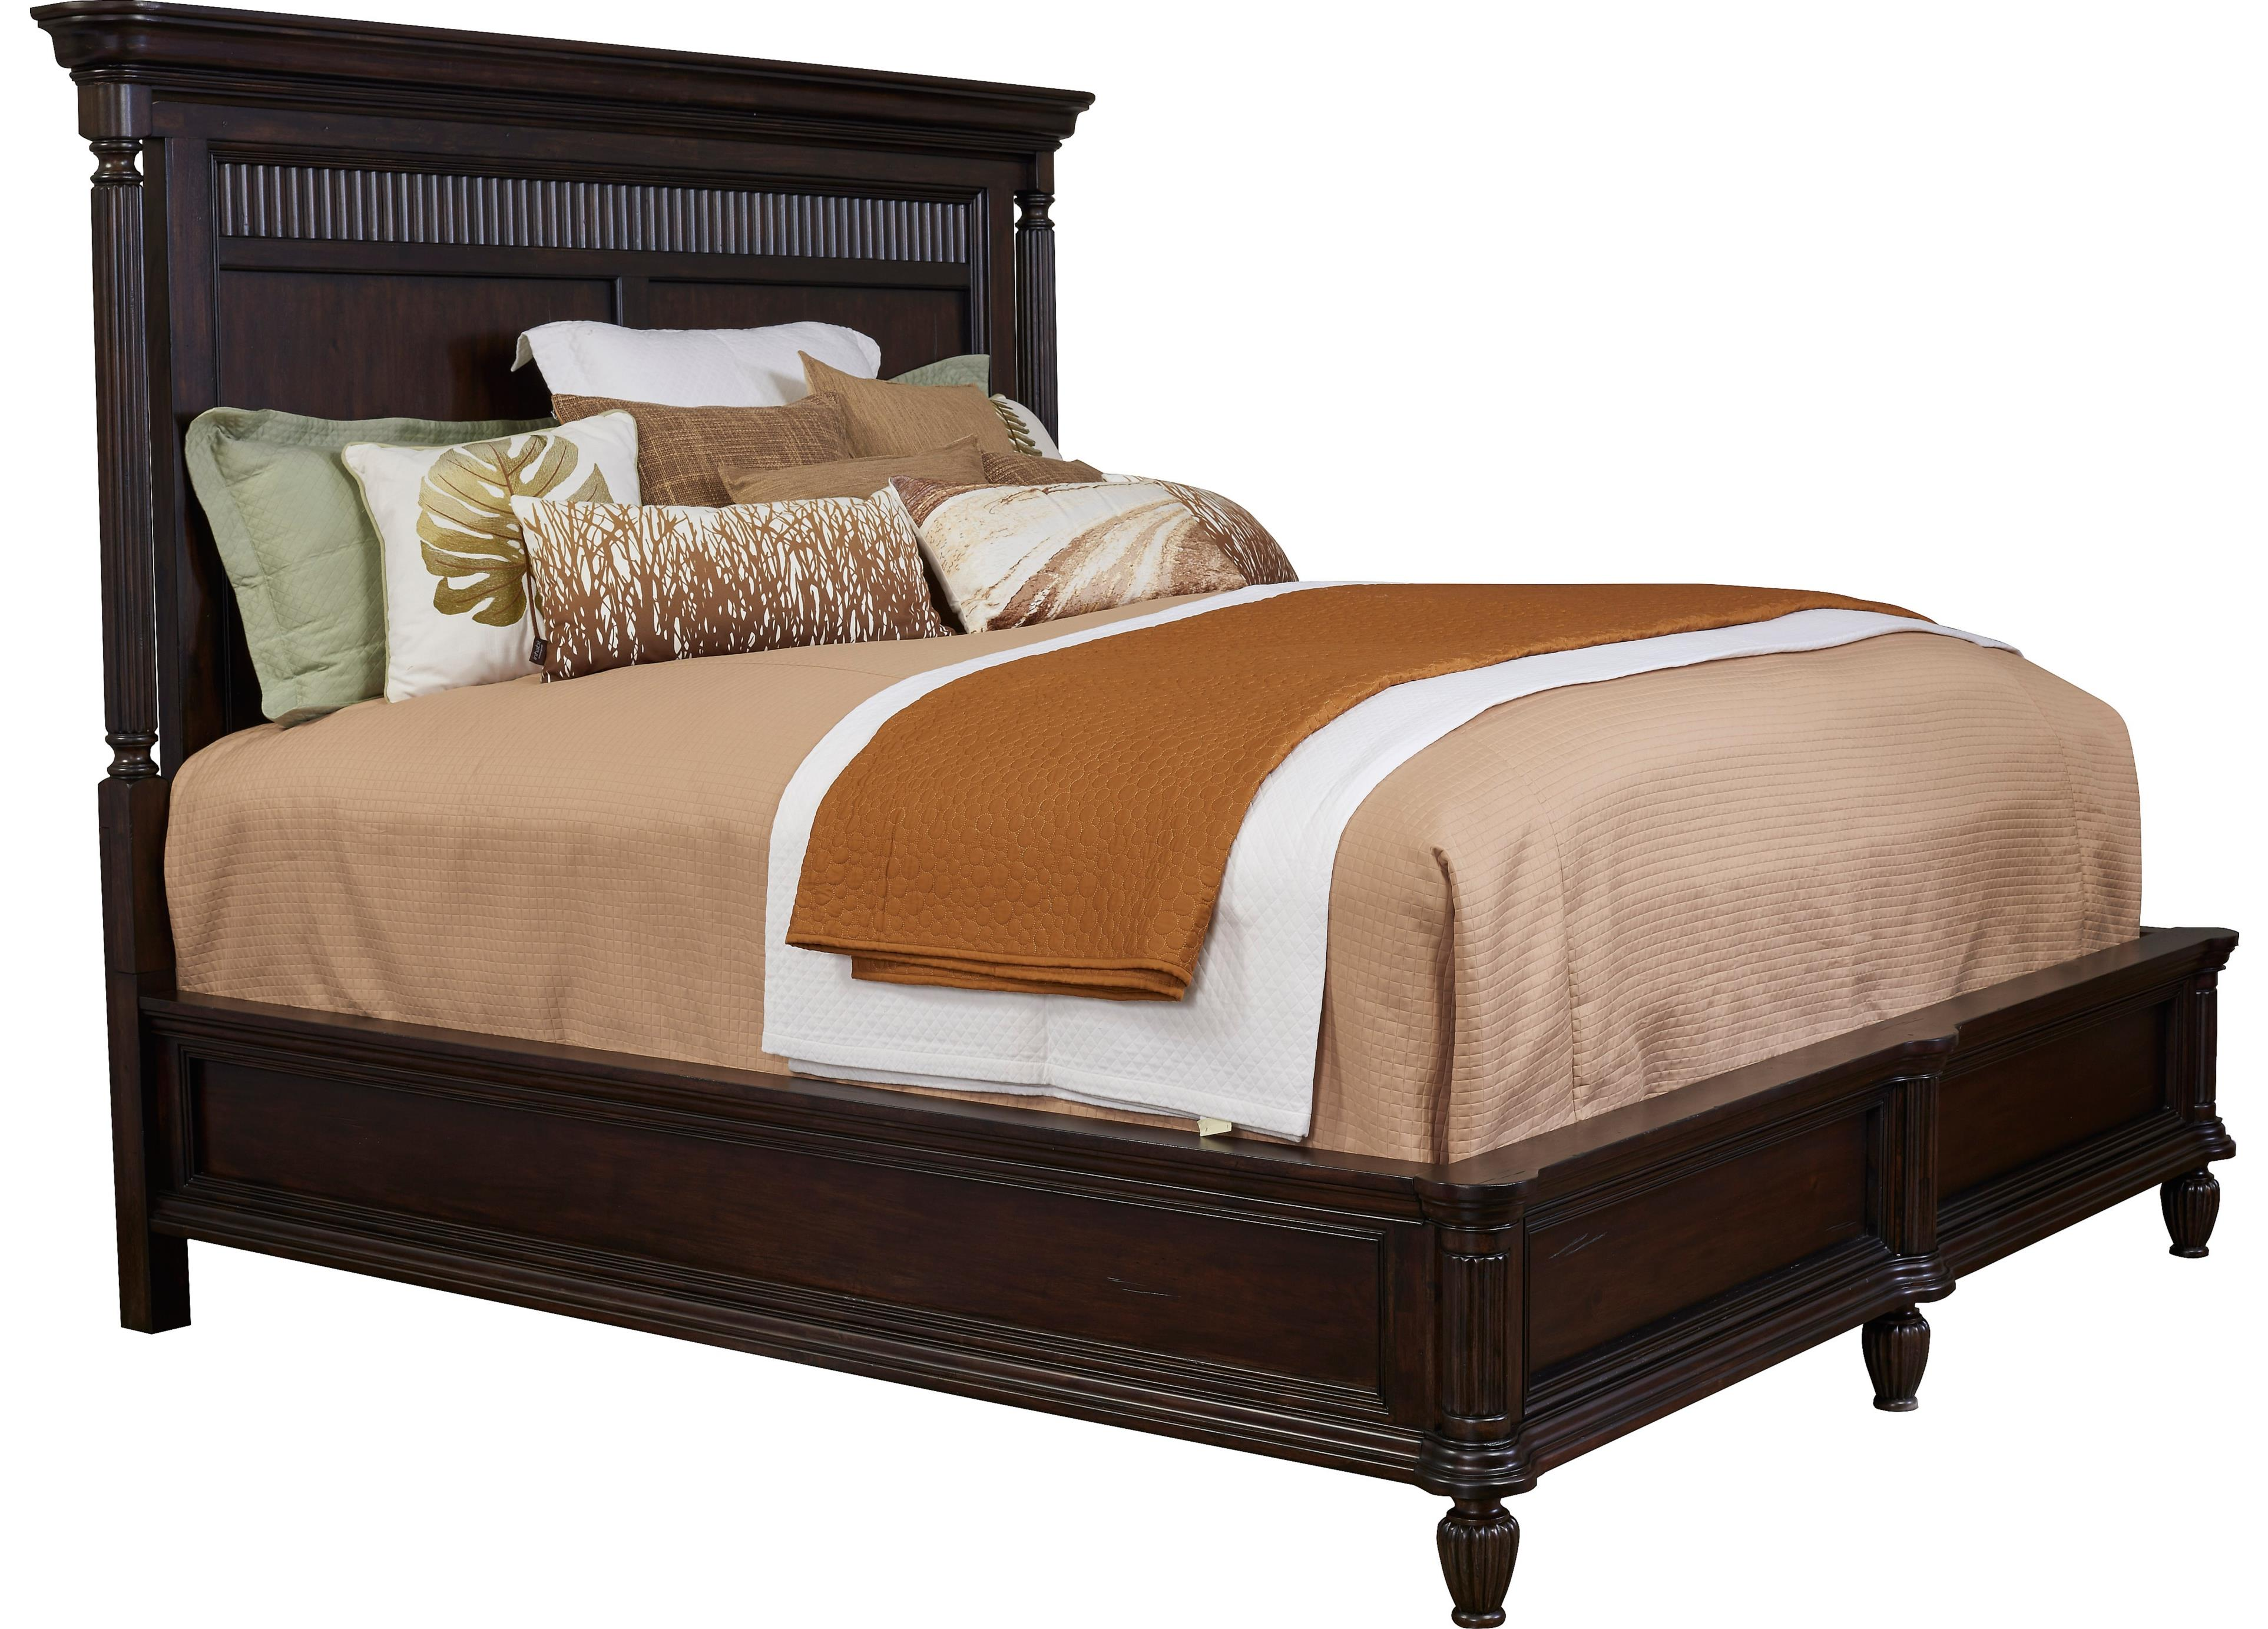 Broyhill Furniture Jessa California King Panel Bed - Item Number: 4980-258+259+455